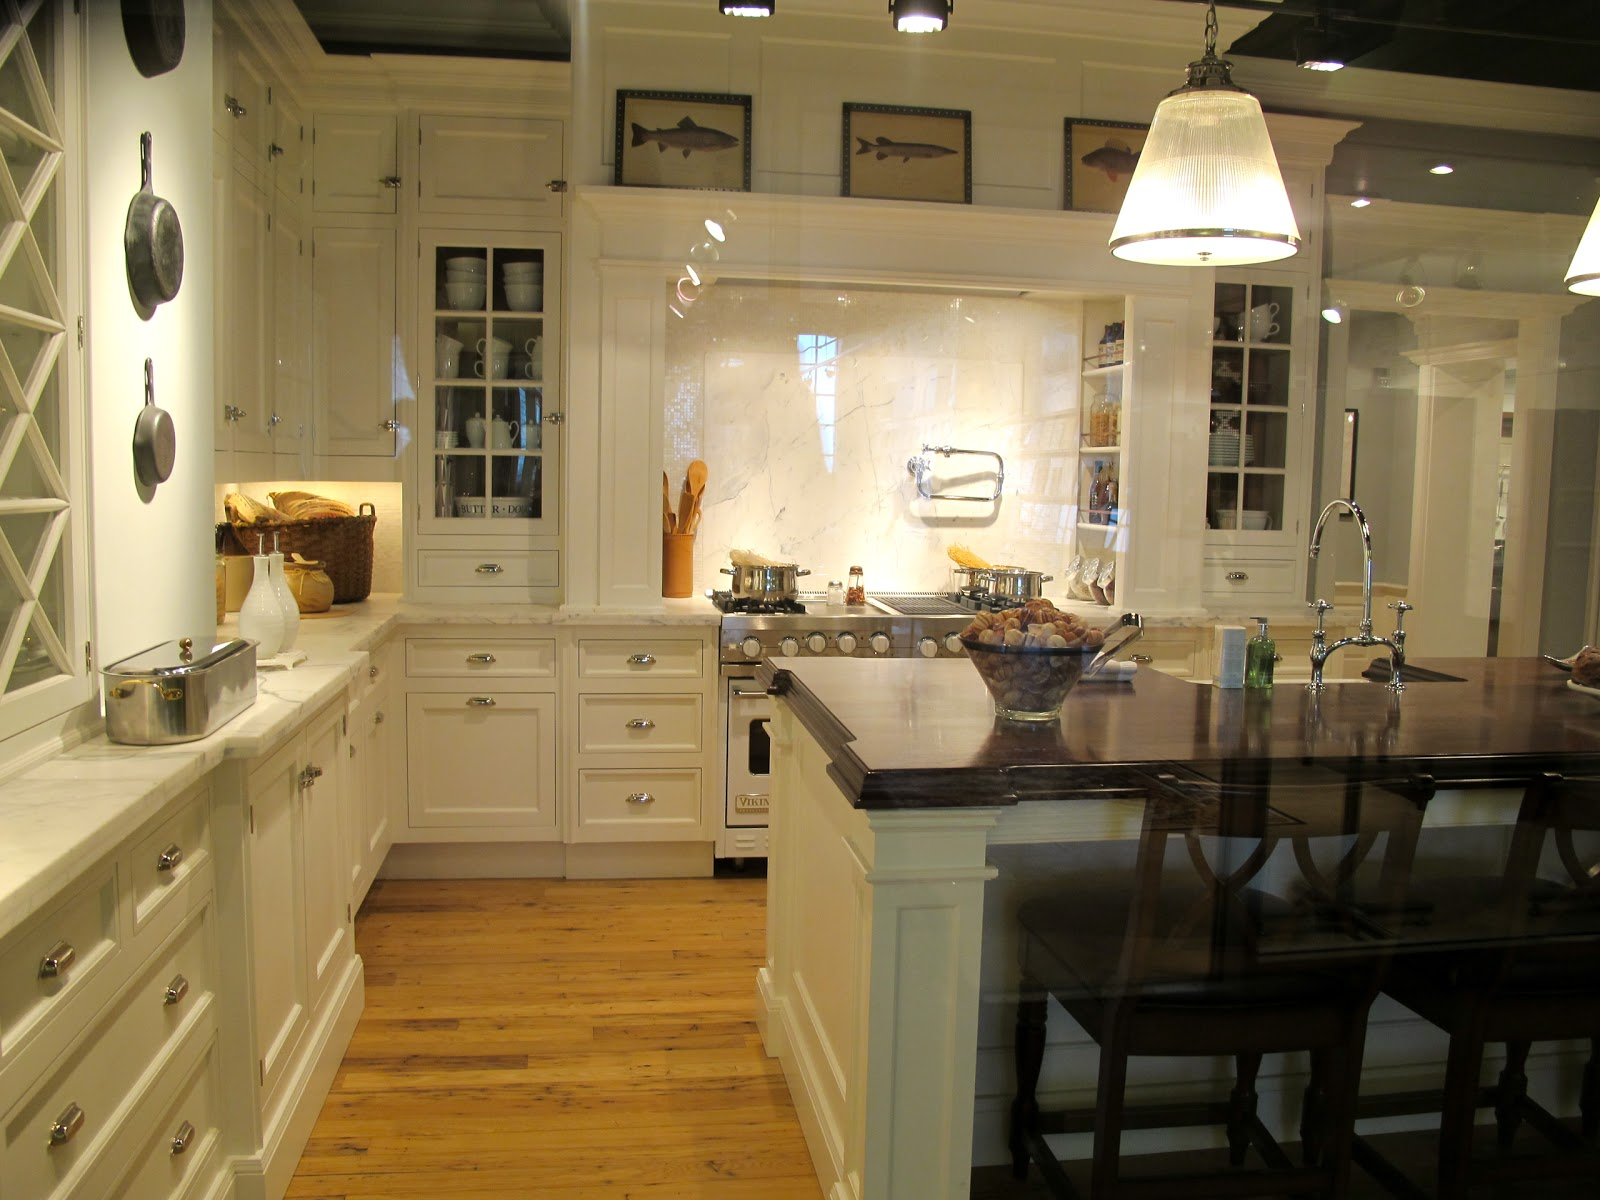 Kitchens The Most Amazing Kitchens Kitchen Inspiration For Classic